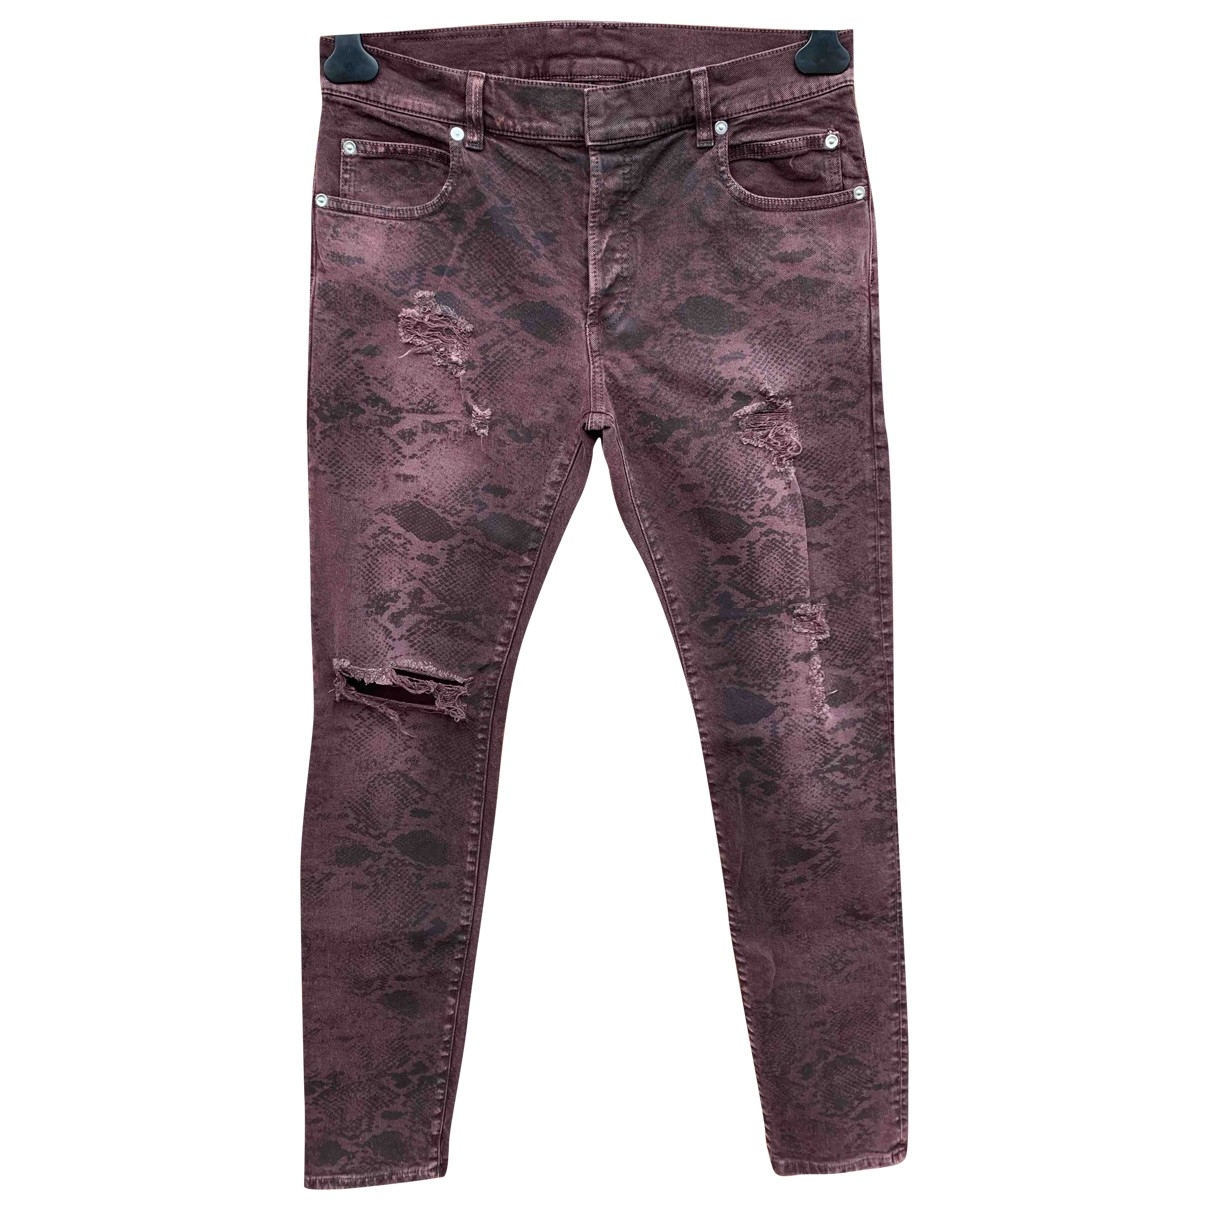 Balmain \N Burgundy Cotton - elasthane Jeans for Men 30 US